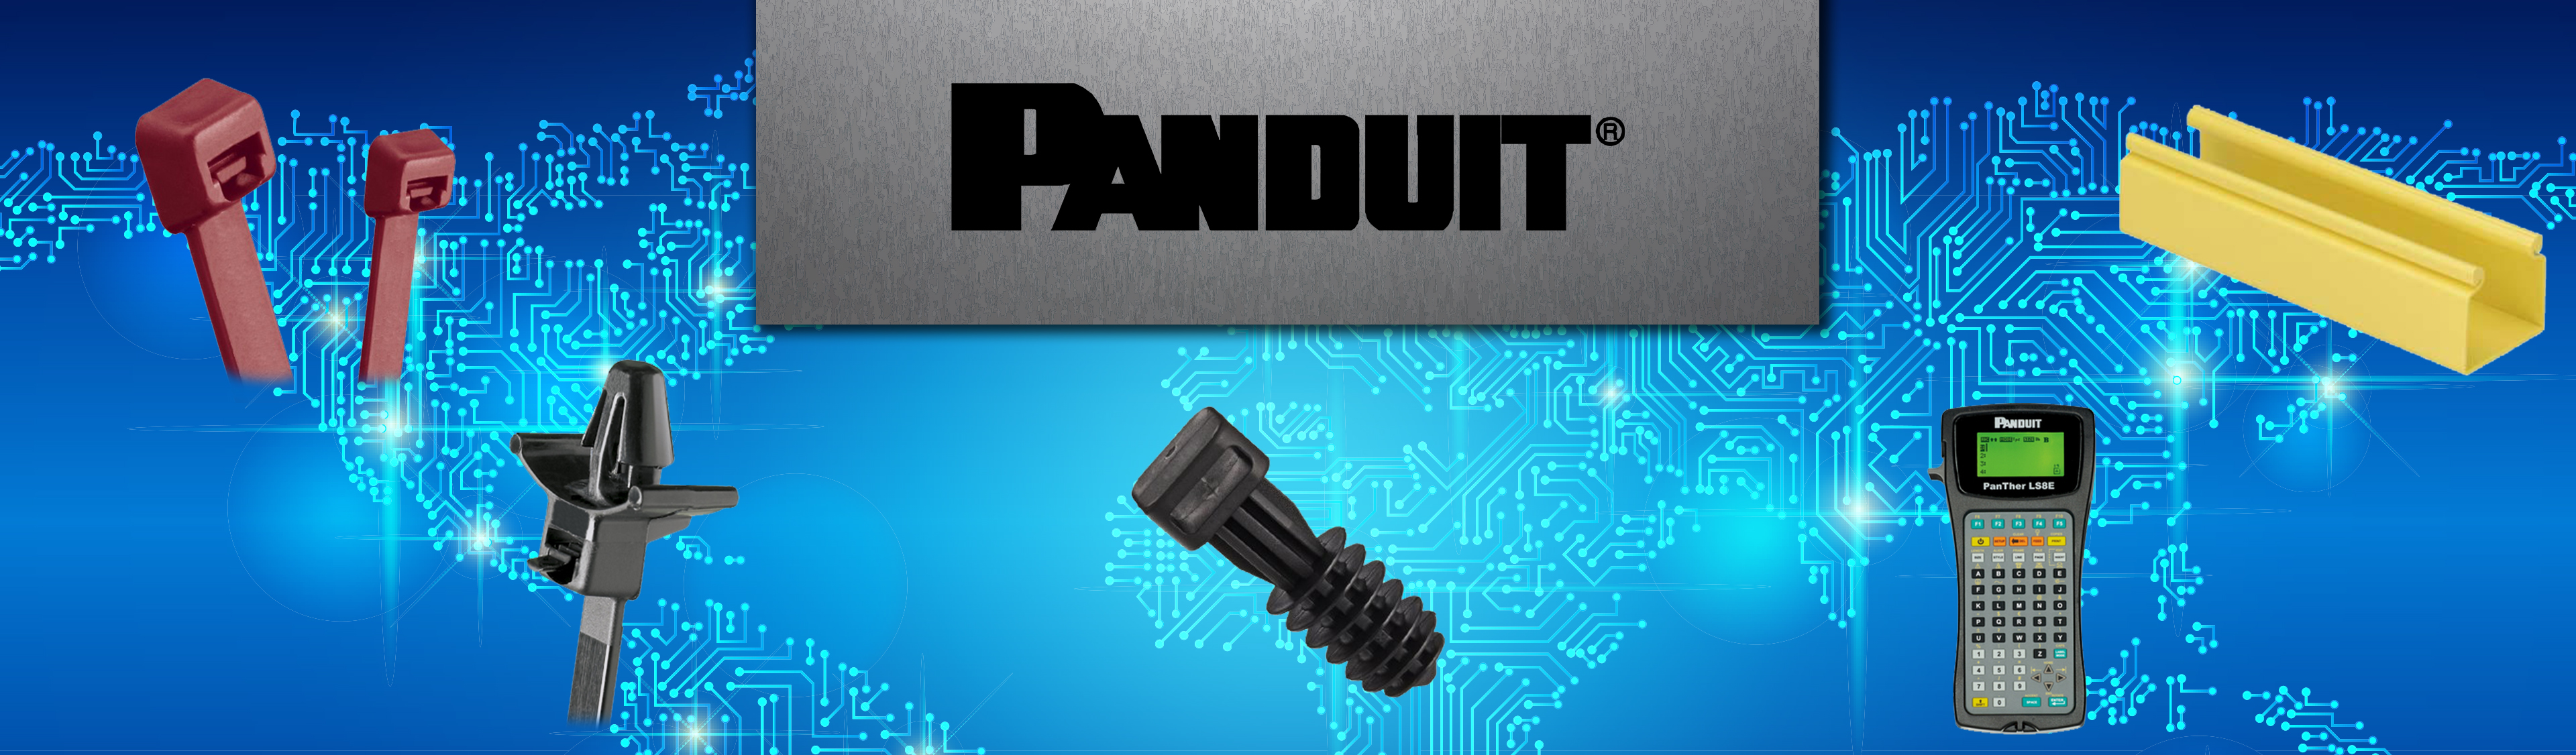 Slide site PANDUIT